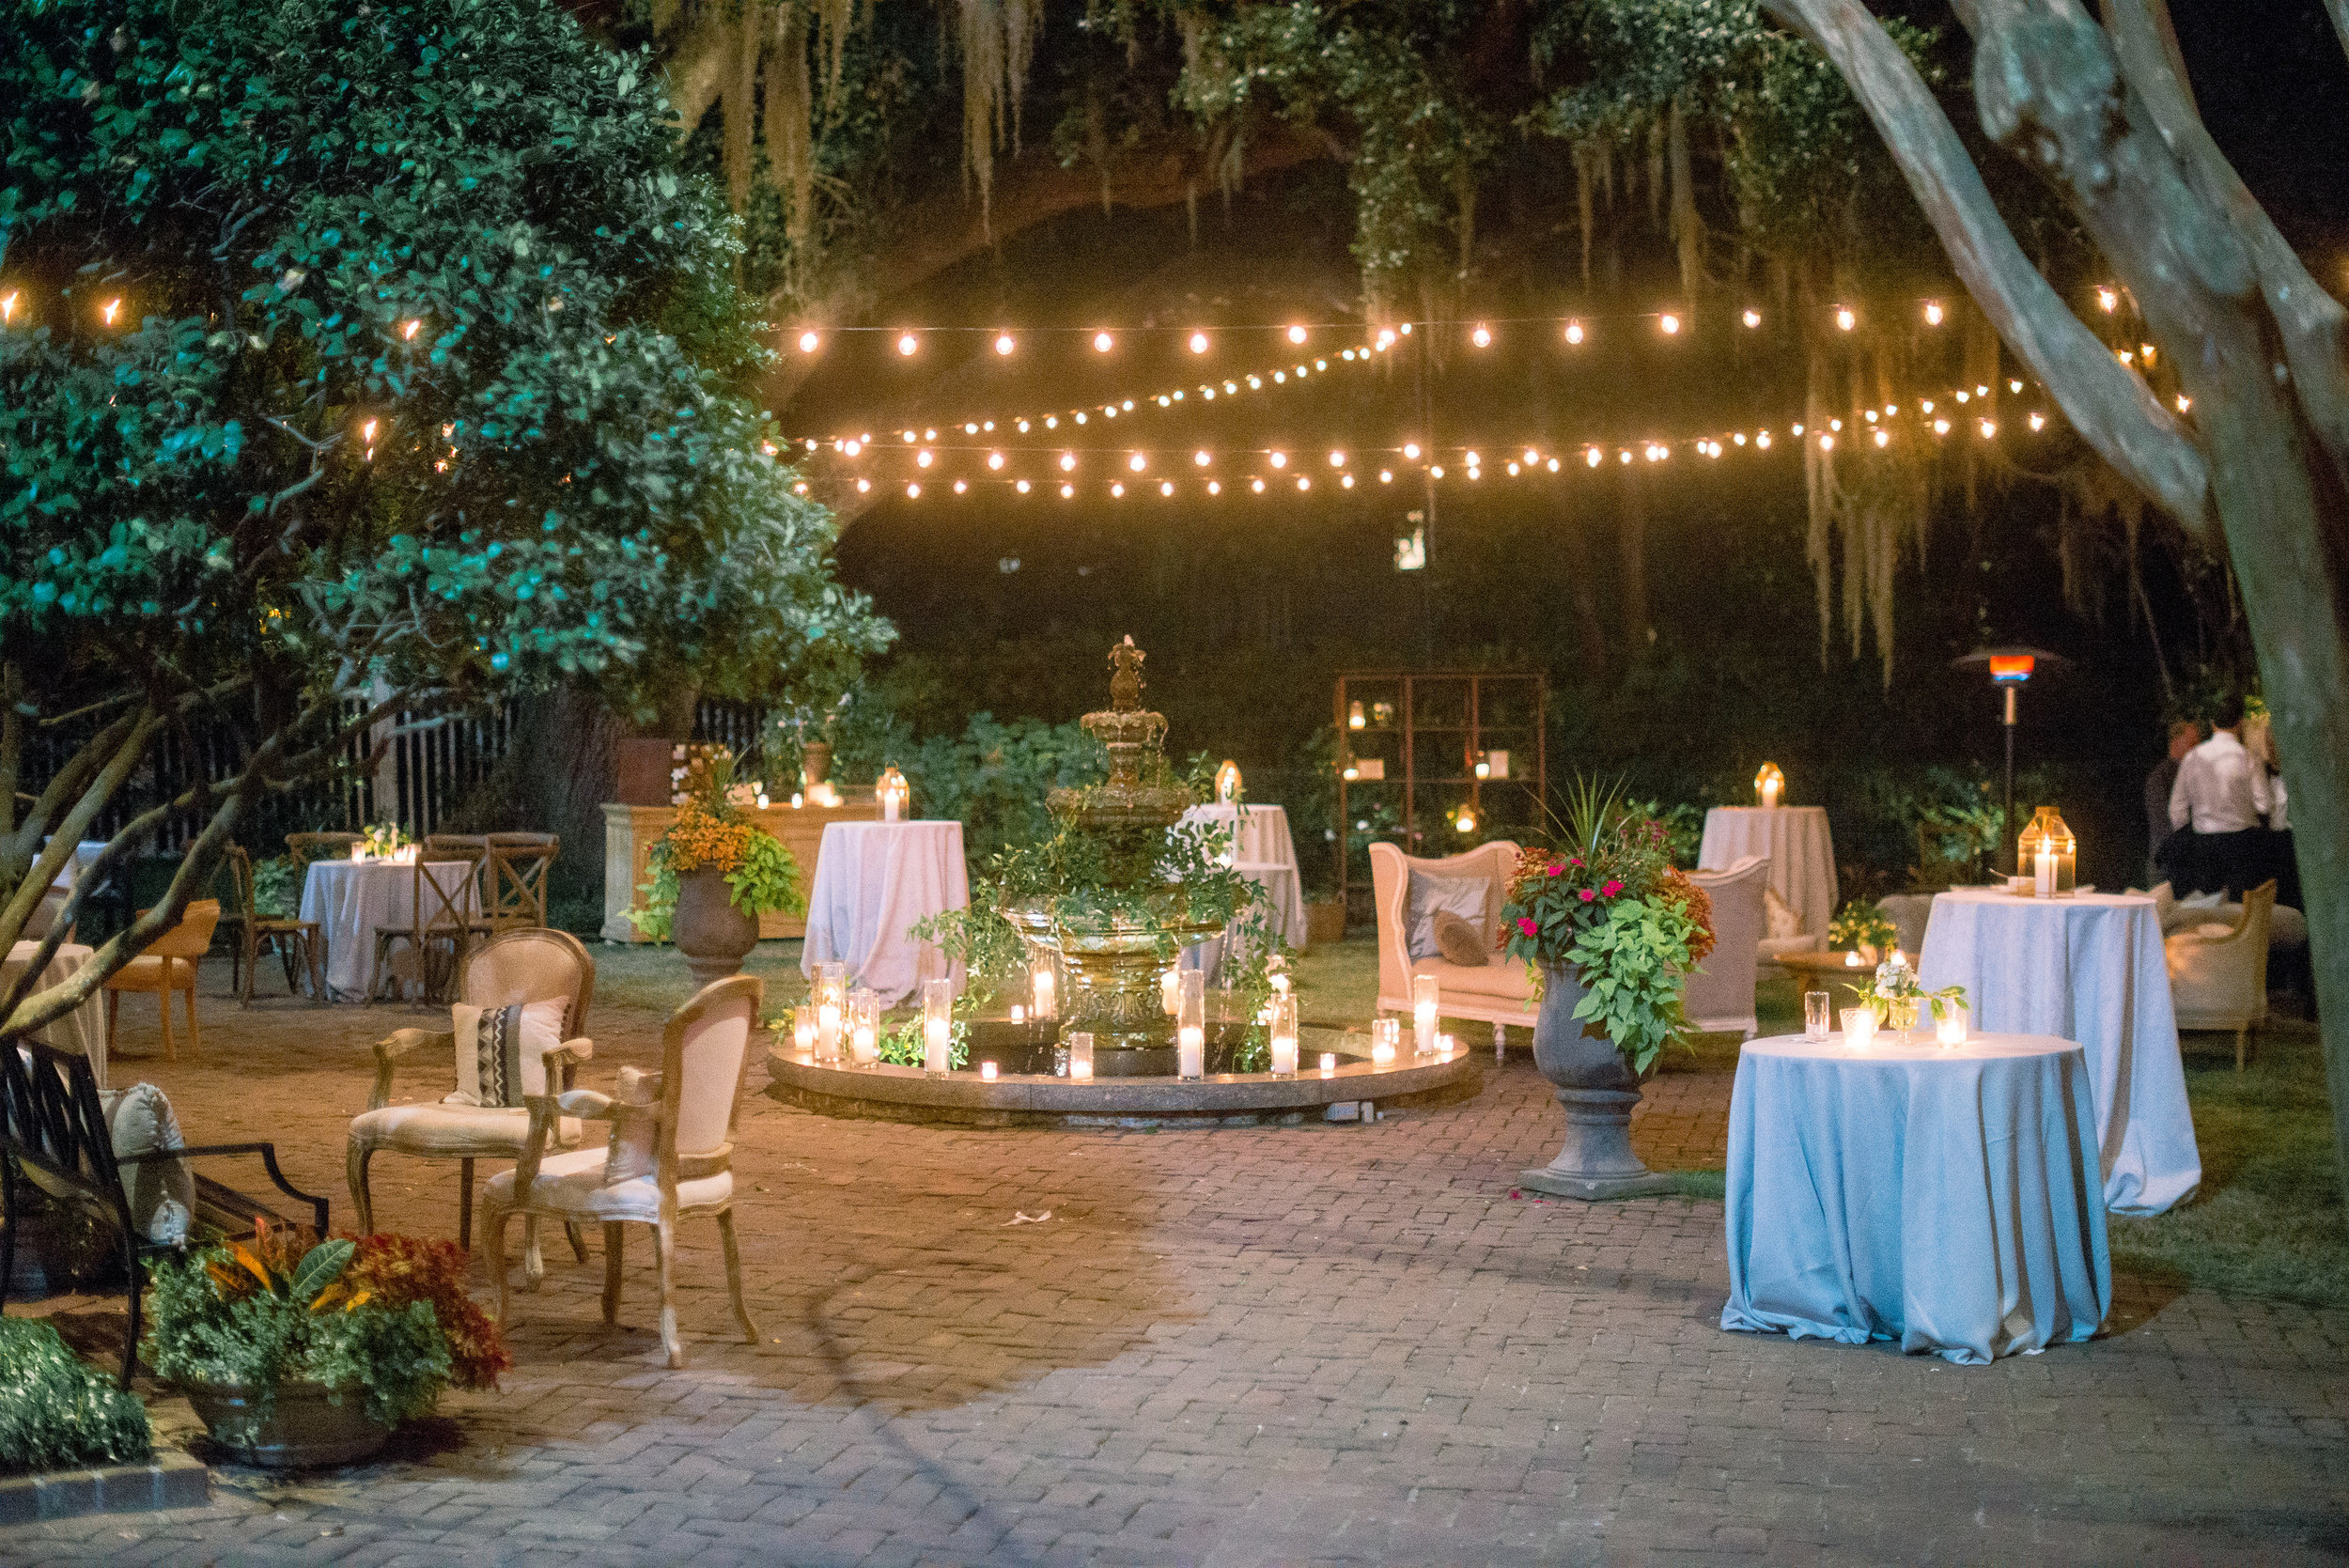 Evening wedding reception at The Governor Thomas Bennett House   //  Event Planning & Design by A Charleston Bride  //  A Lowcountry Wedding Magazine & Blog